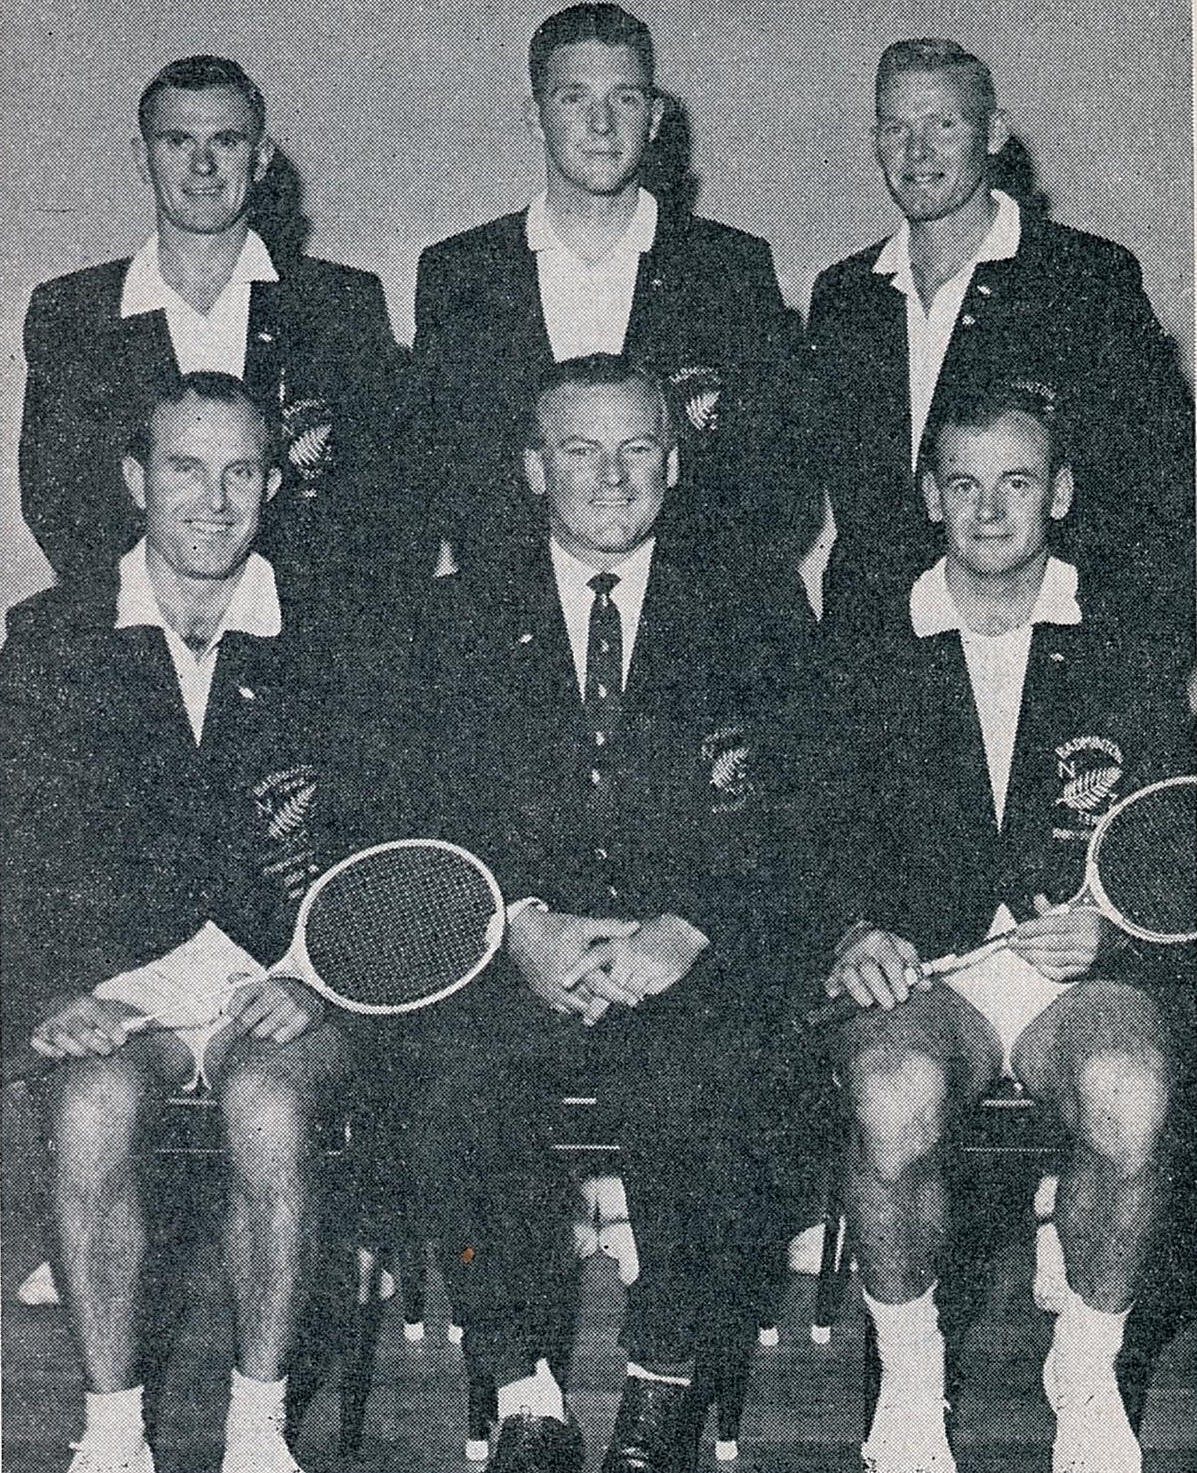 Je robson (seated left) with gf vincent (manager) and rest of nz team in 1962 - ibf handbook for 1962-63